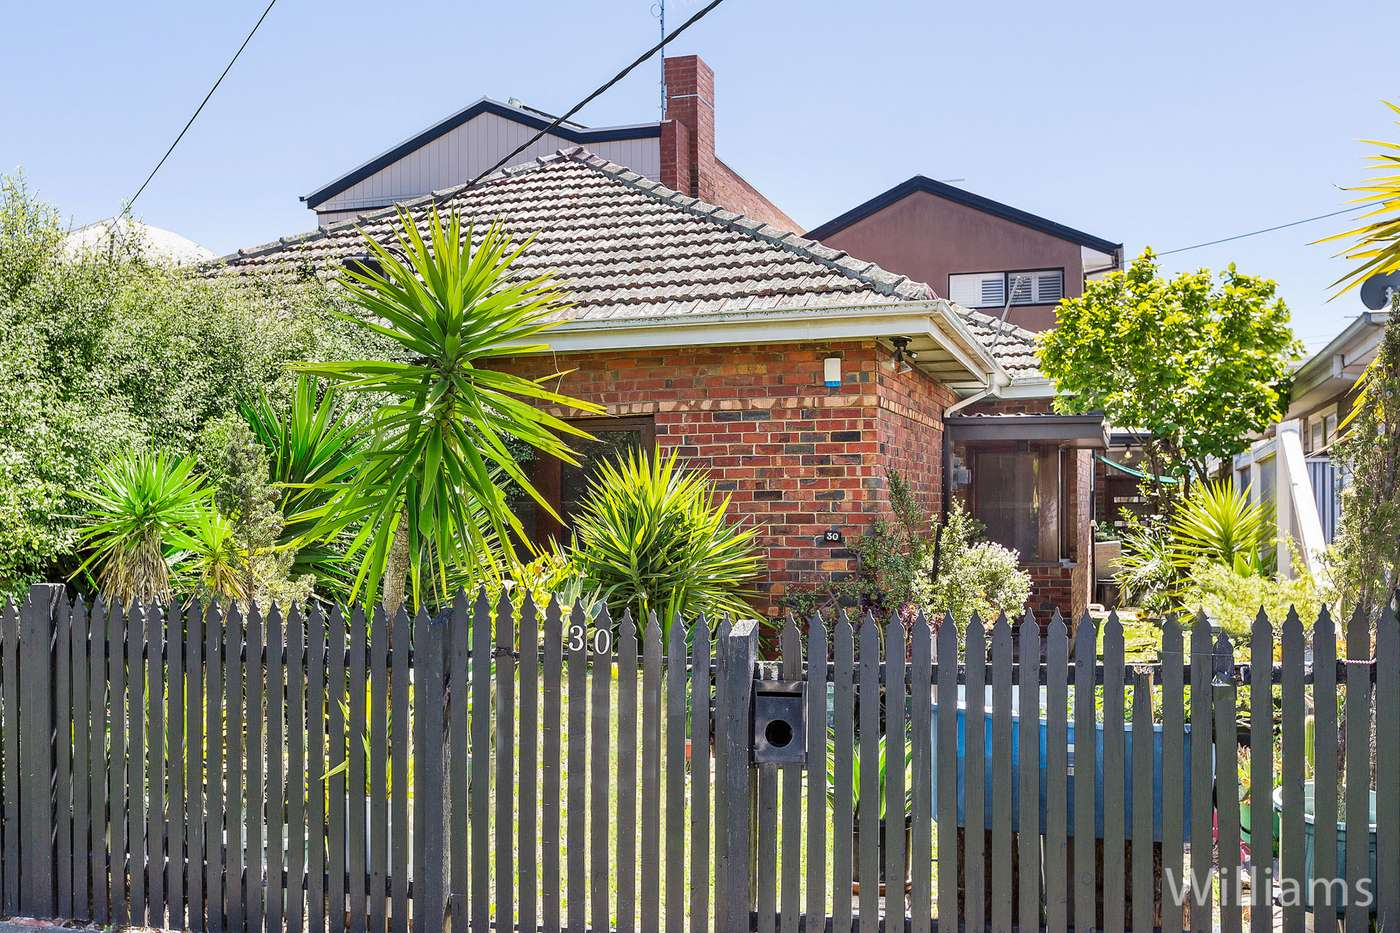 Main view of Homely house listing, 30 Junction Street, Newport, VIC 3015